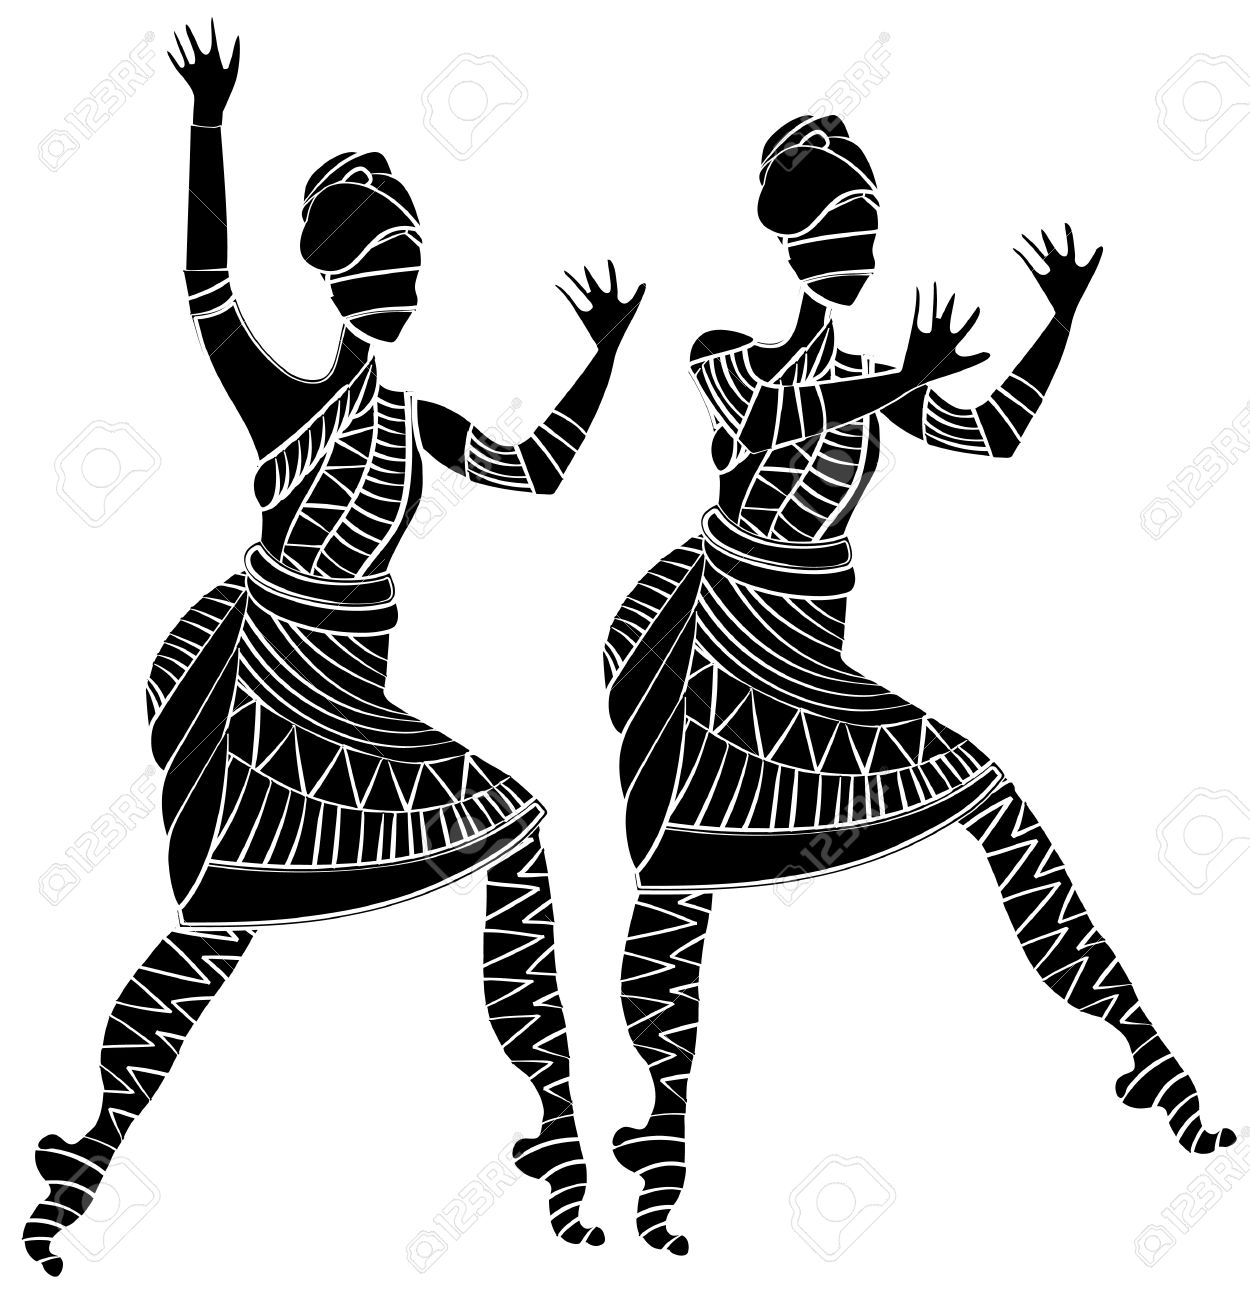 Traditional clipart african culture African And Stock Stock Religion